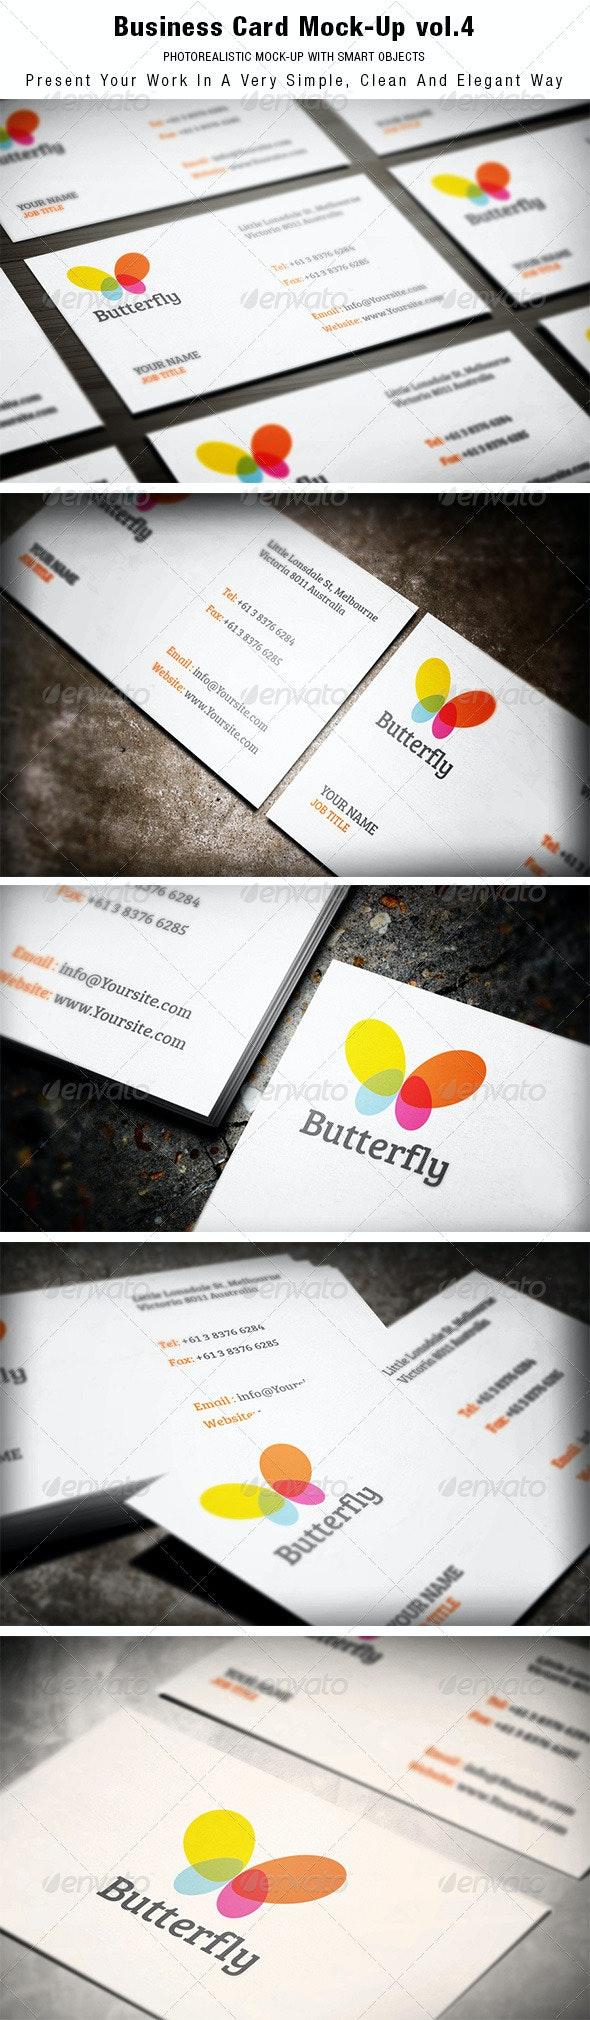 Business Card Mock-up vol.4 - Business Cards Print